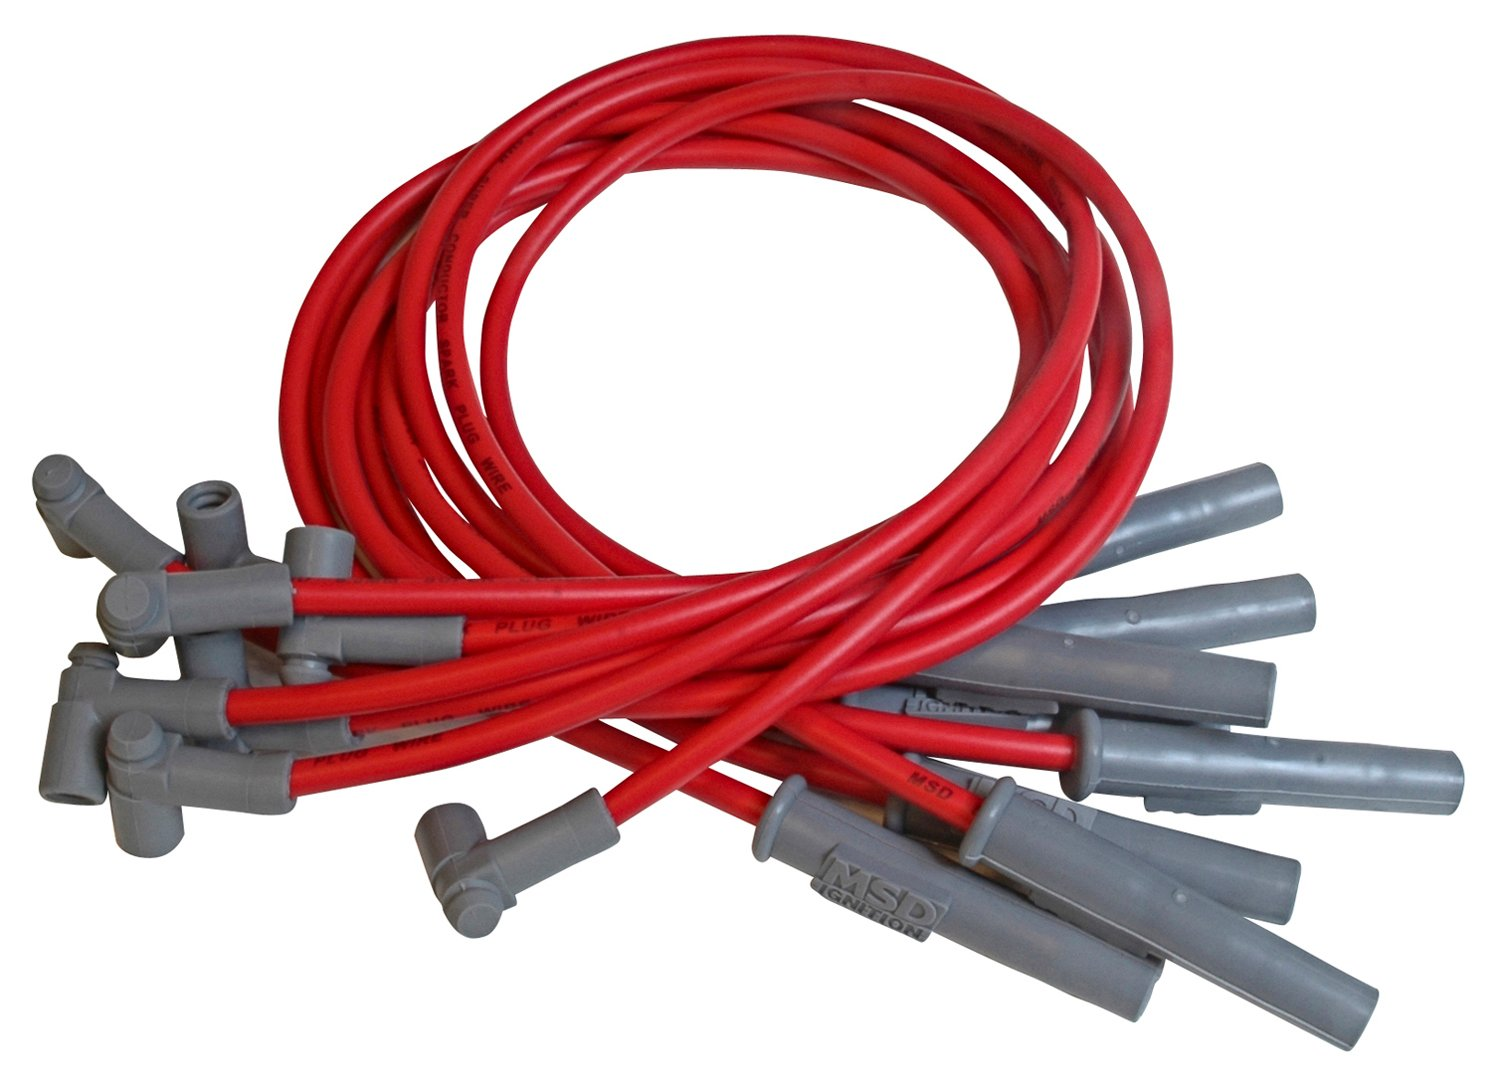 Msd Ignition Wires | 32749